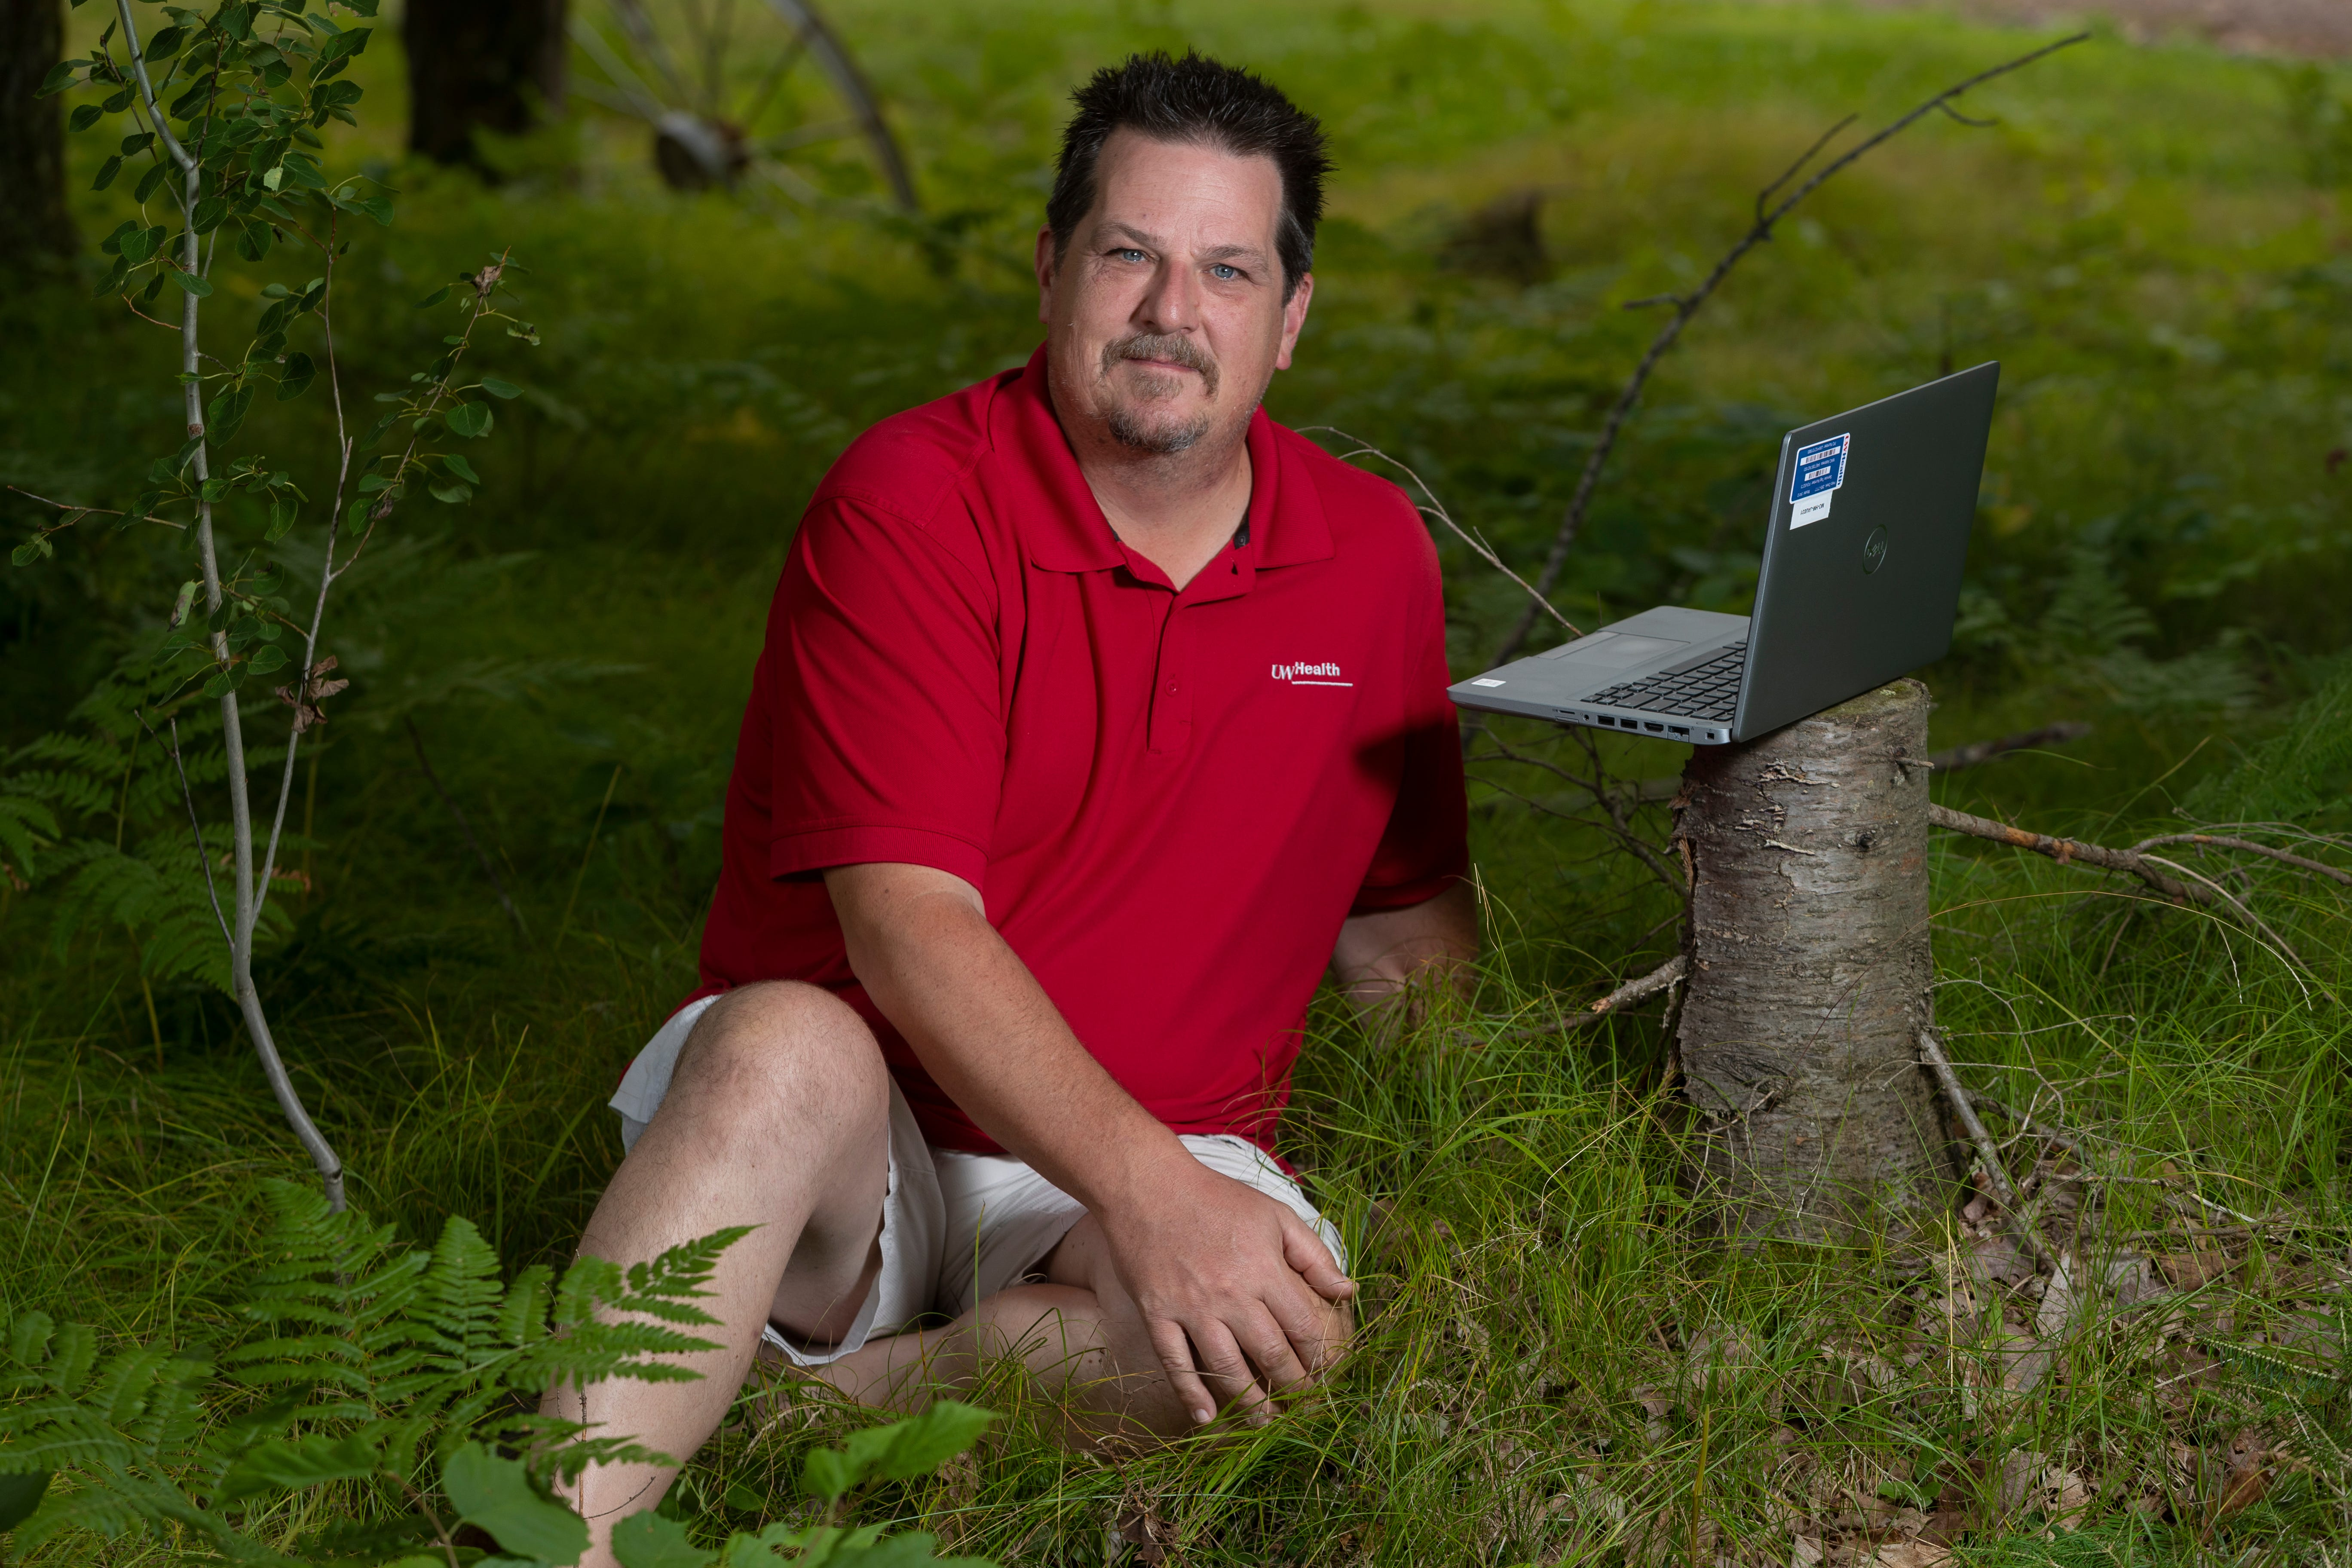 Jeff Ulrich is a regional program manager for UW Health who works from his home despite having slow internet on his 40-acre property.